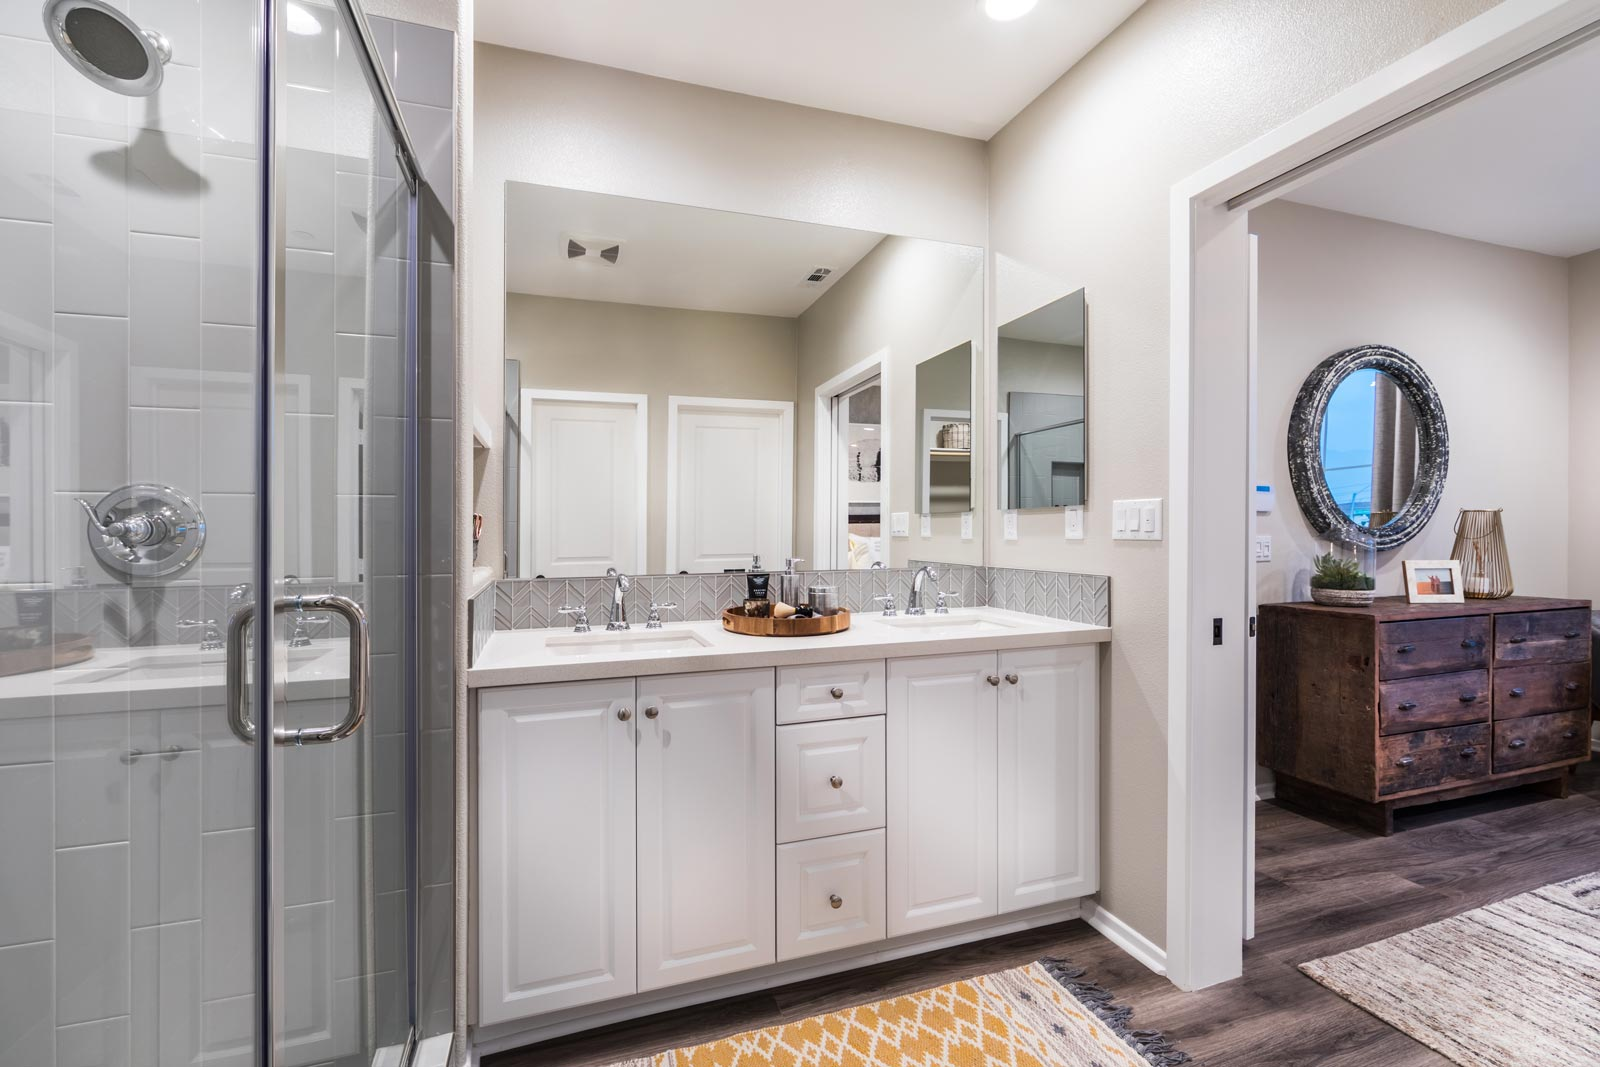 Plan 1 Master Bath | Solstice at New Haven in Ontario Ranch, CA | Brookfield Residential